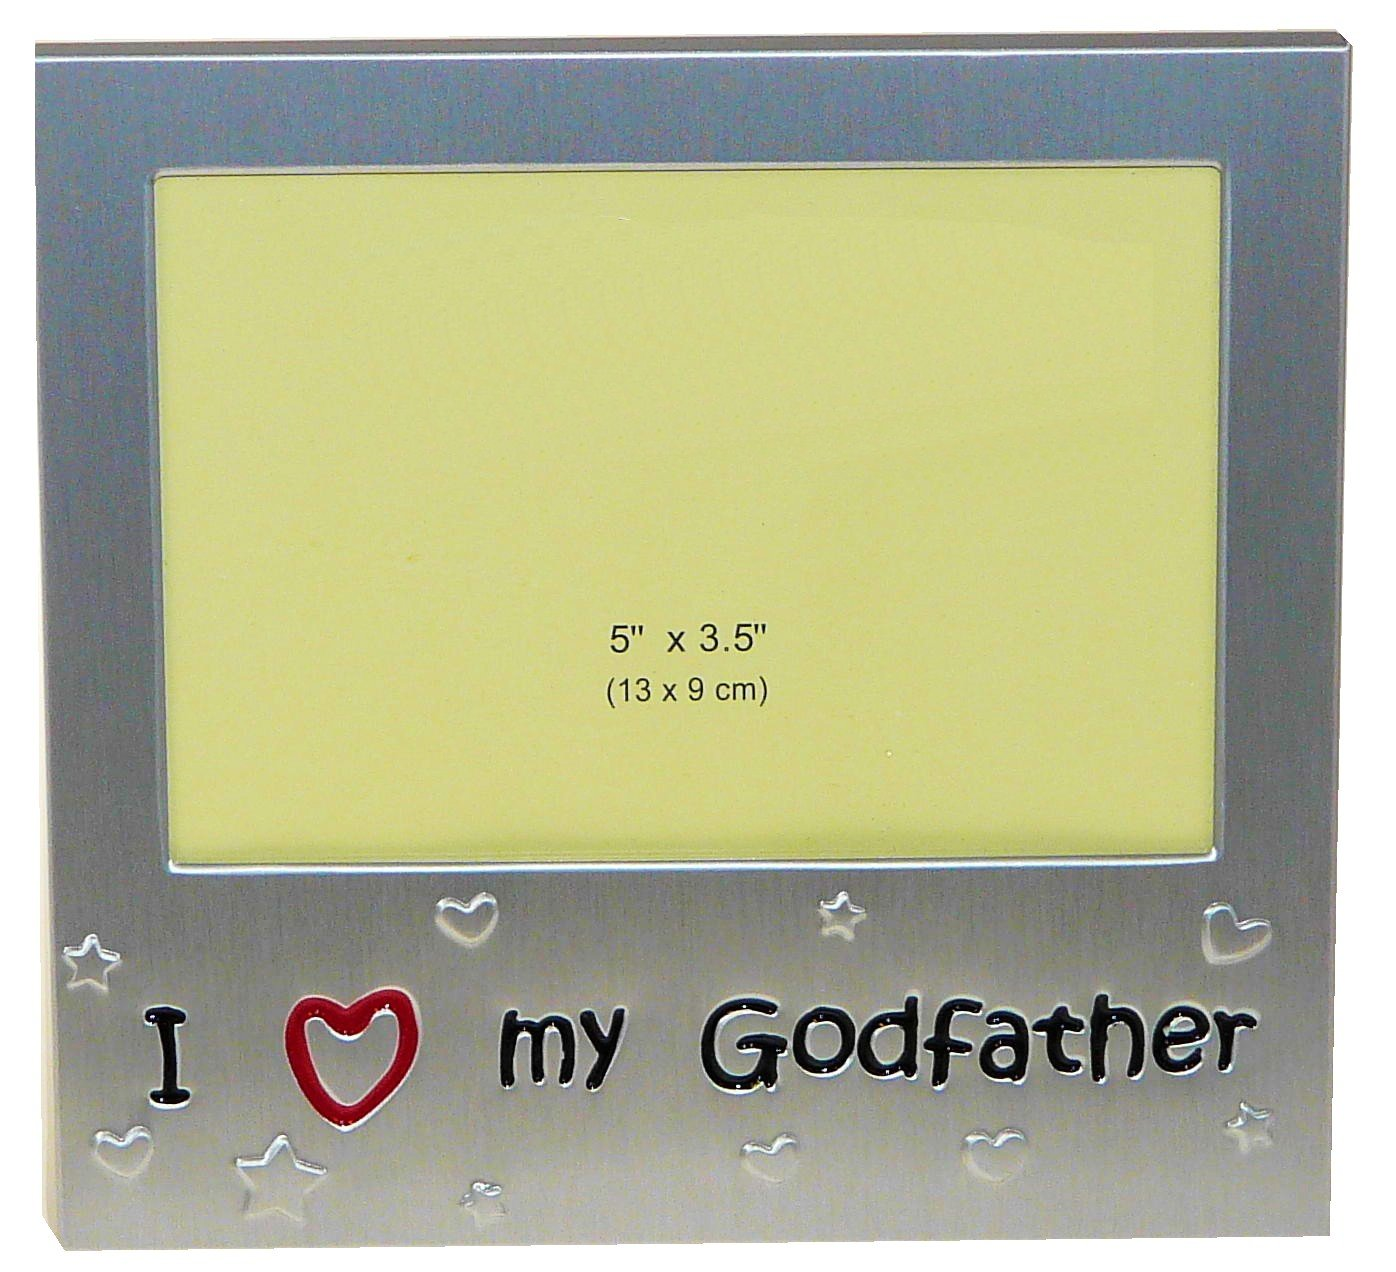 I Love My GodFather Photo Picture Frame Gift 5 x 3.5